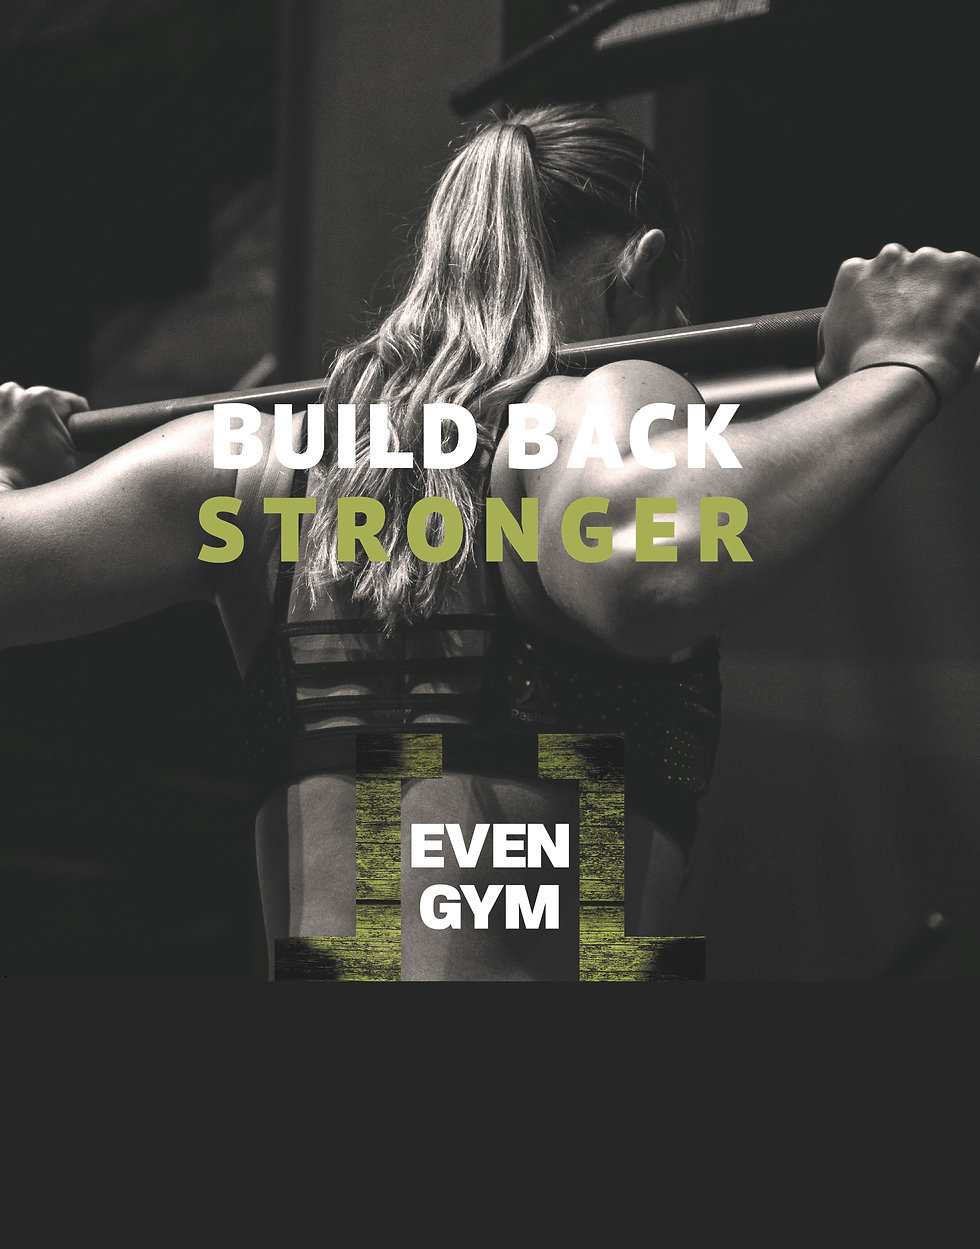 Build Back Stronger achtergrond website.